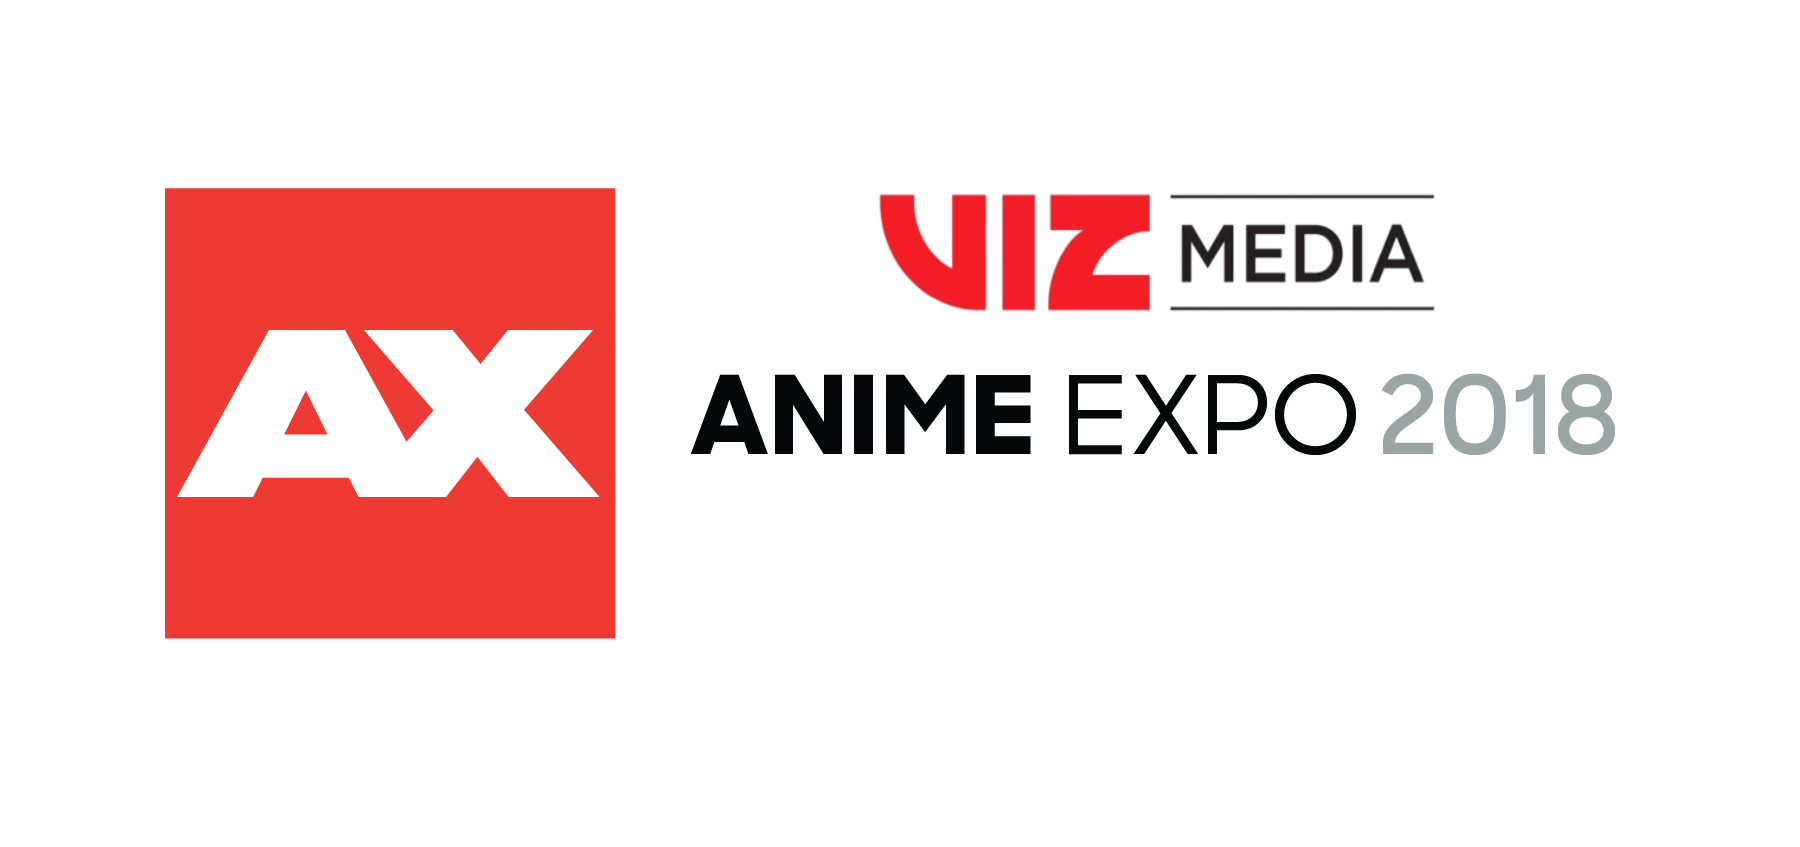 Press Release: VIZ Media Announces Anime Expo 2018 Guests & Activities!